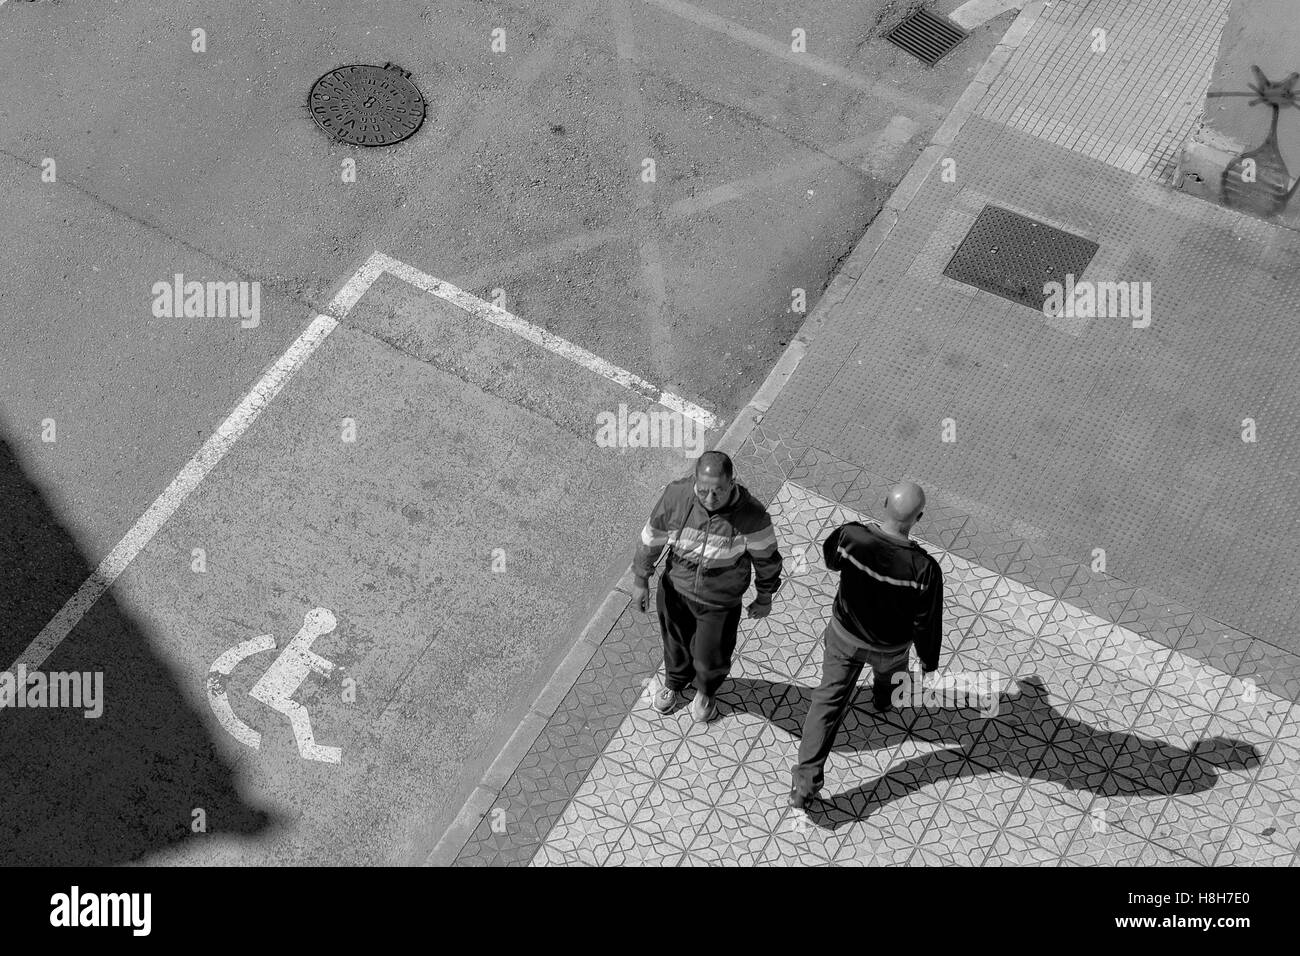 Two men crossing in the street of the town of Colincres, Cantabria, Spain, Europe. - Stock Image